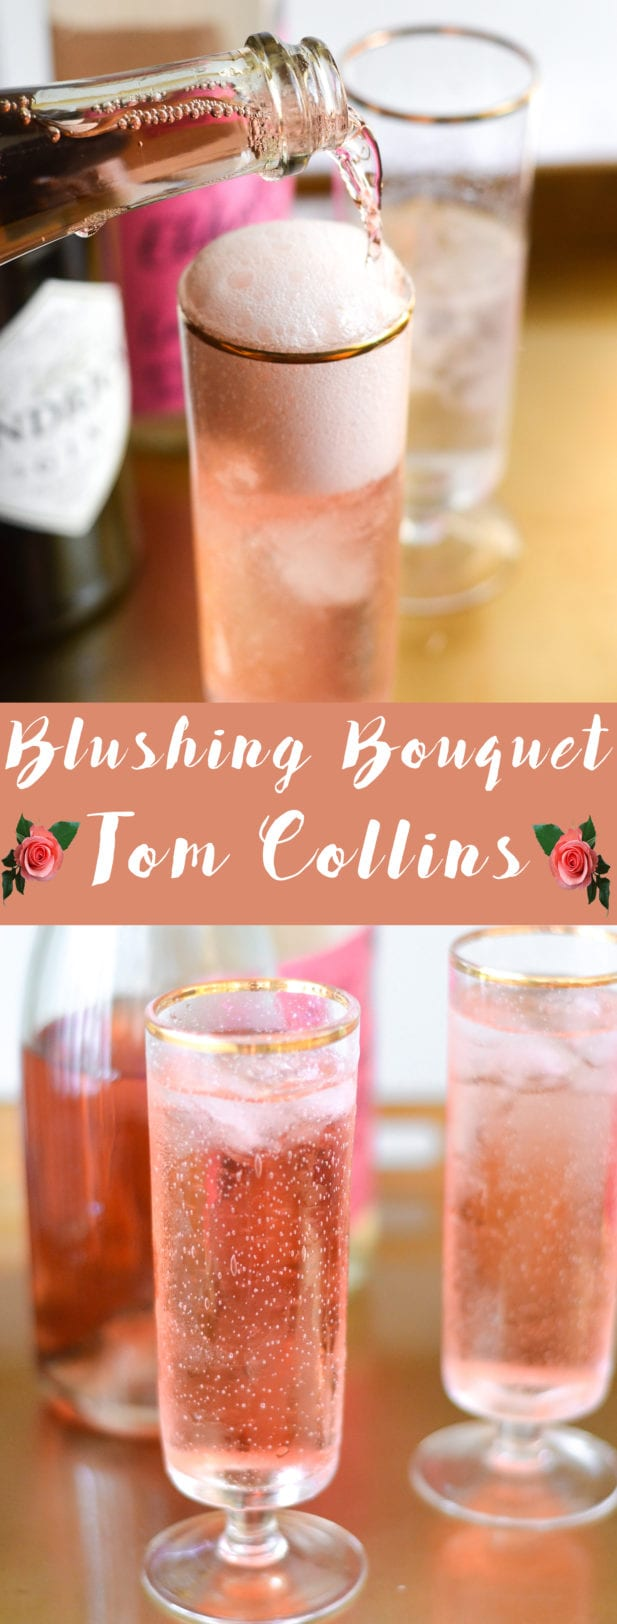 Blushing Bouquet Tom Collins